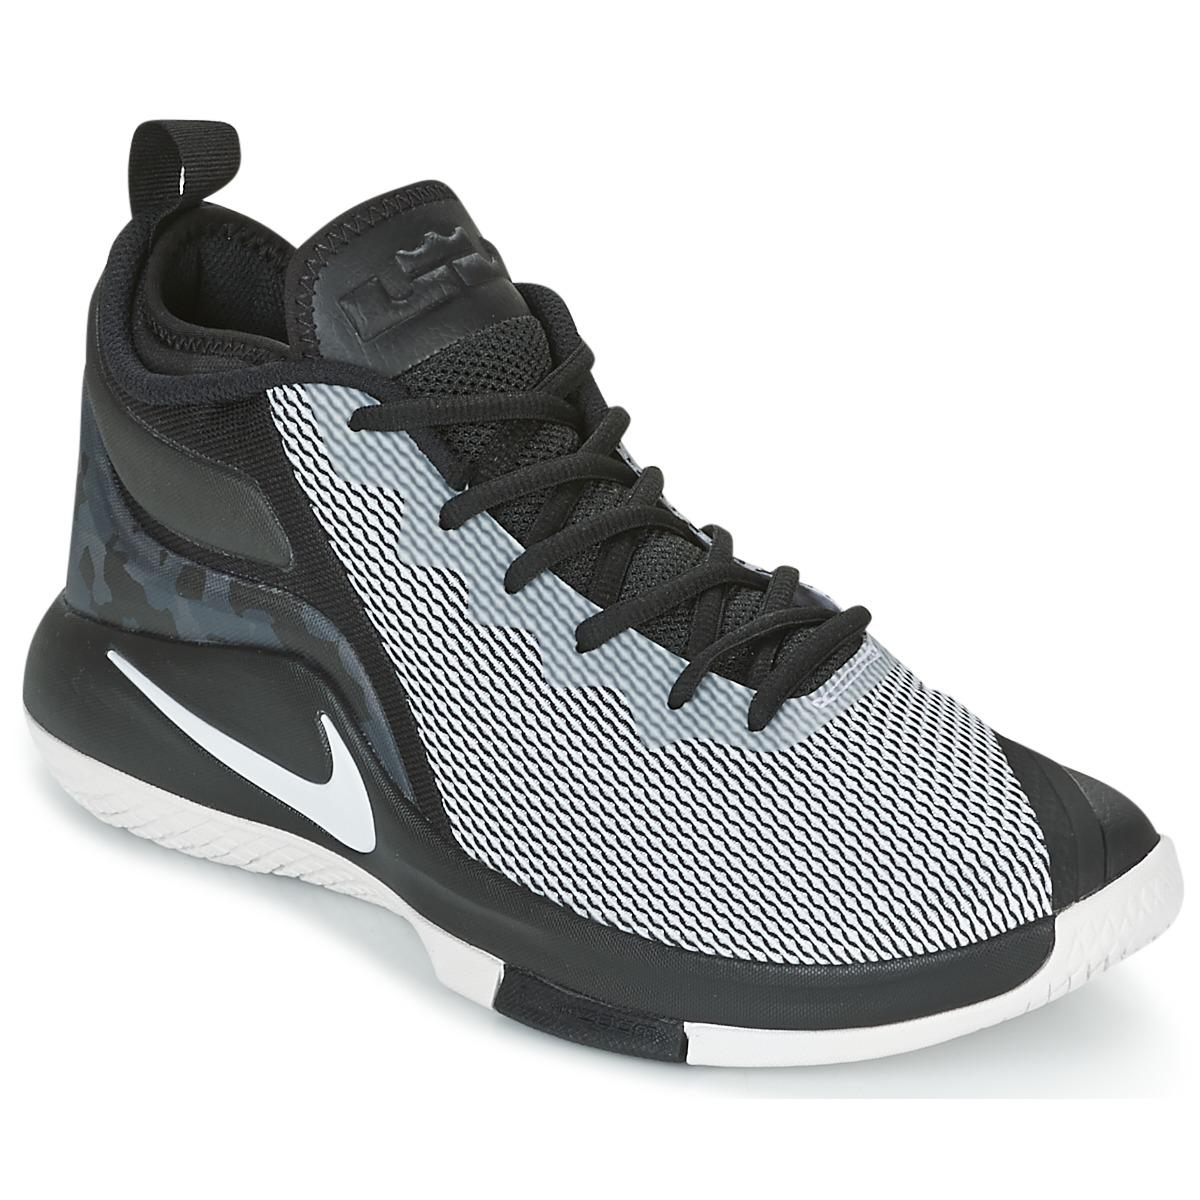 9db84c26472 Nike Lebron Witness Ii Men s Basketball Trainers (shoes) In Black in ...